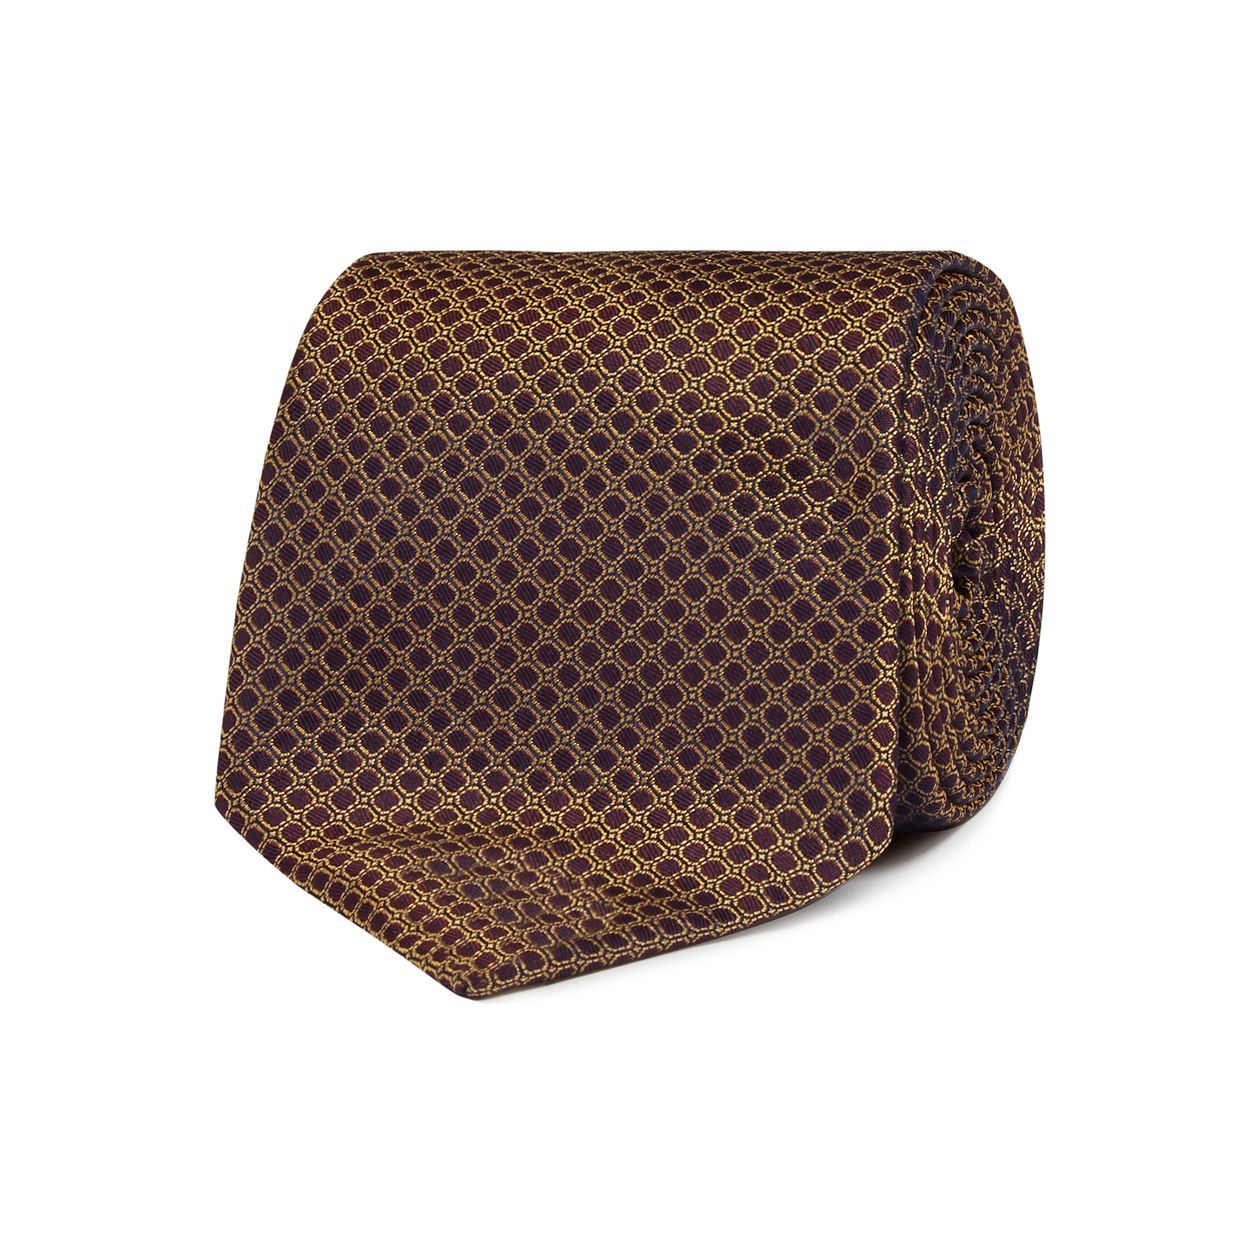 Hammond & Co. by Patrick Grant Gold textured honeycomb tie